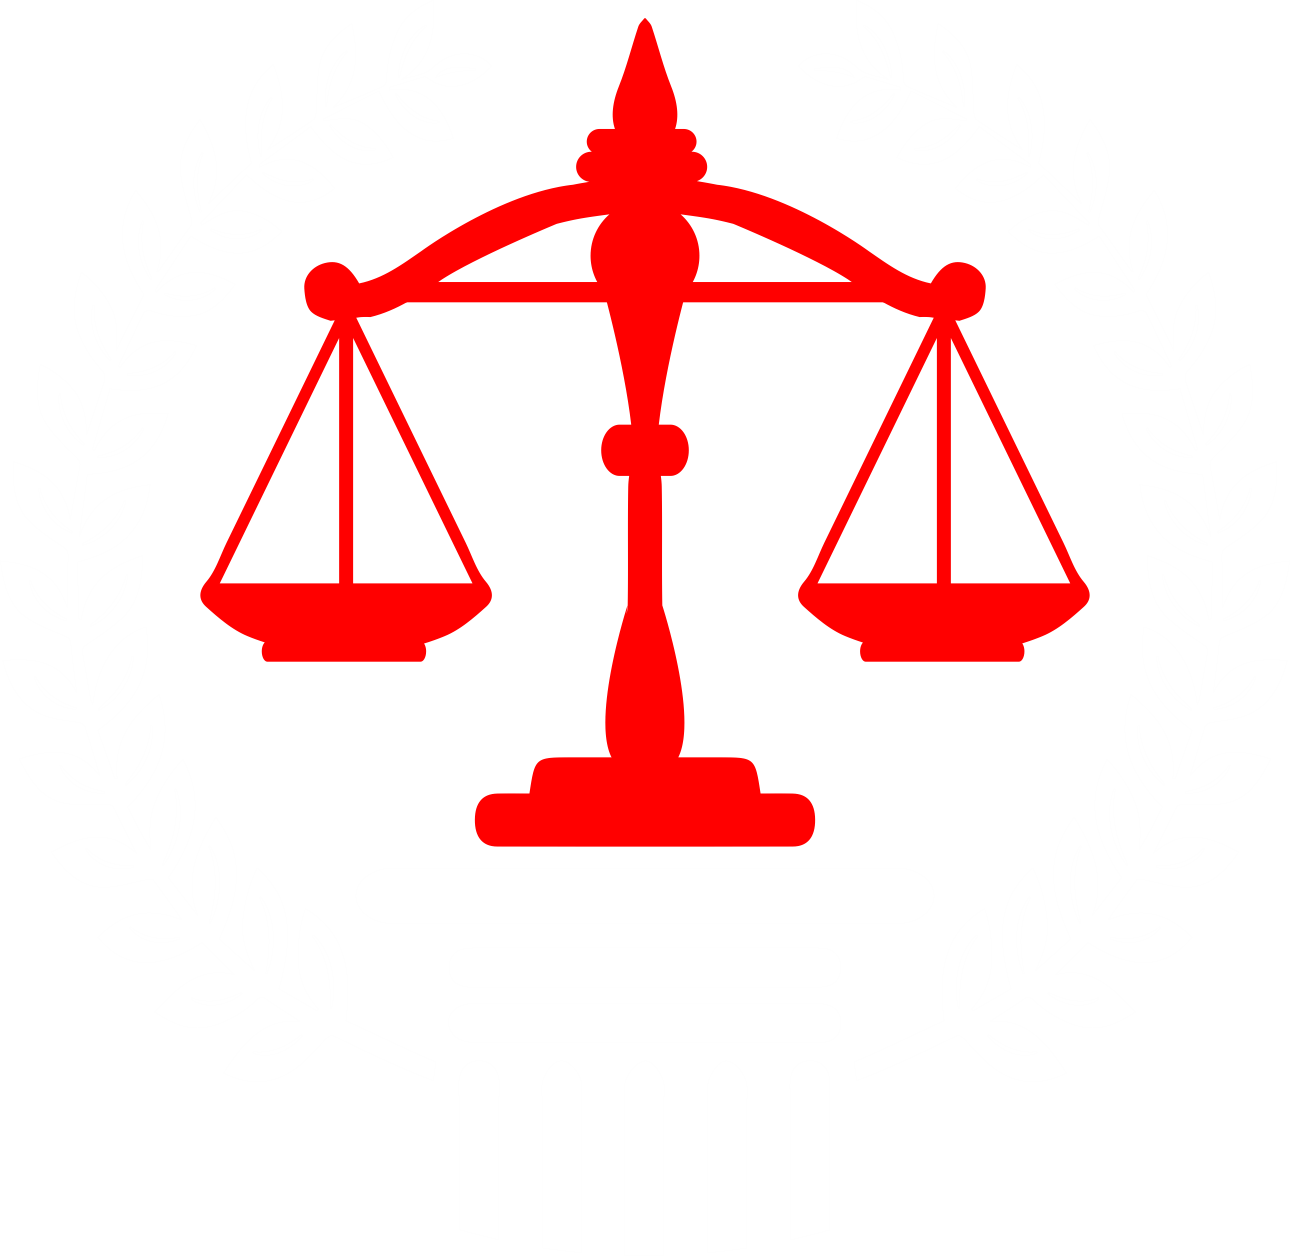 Justice clipart balance power. Attorney at law group